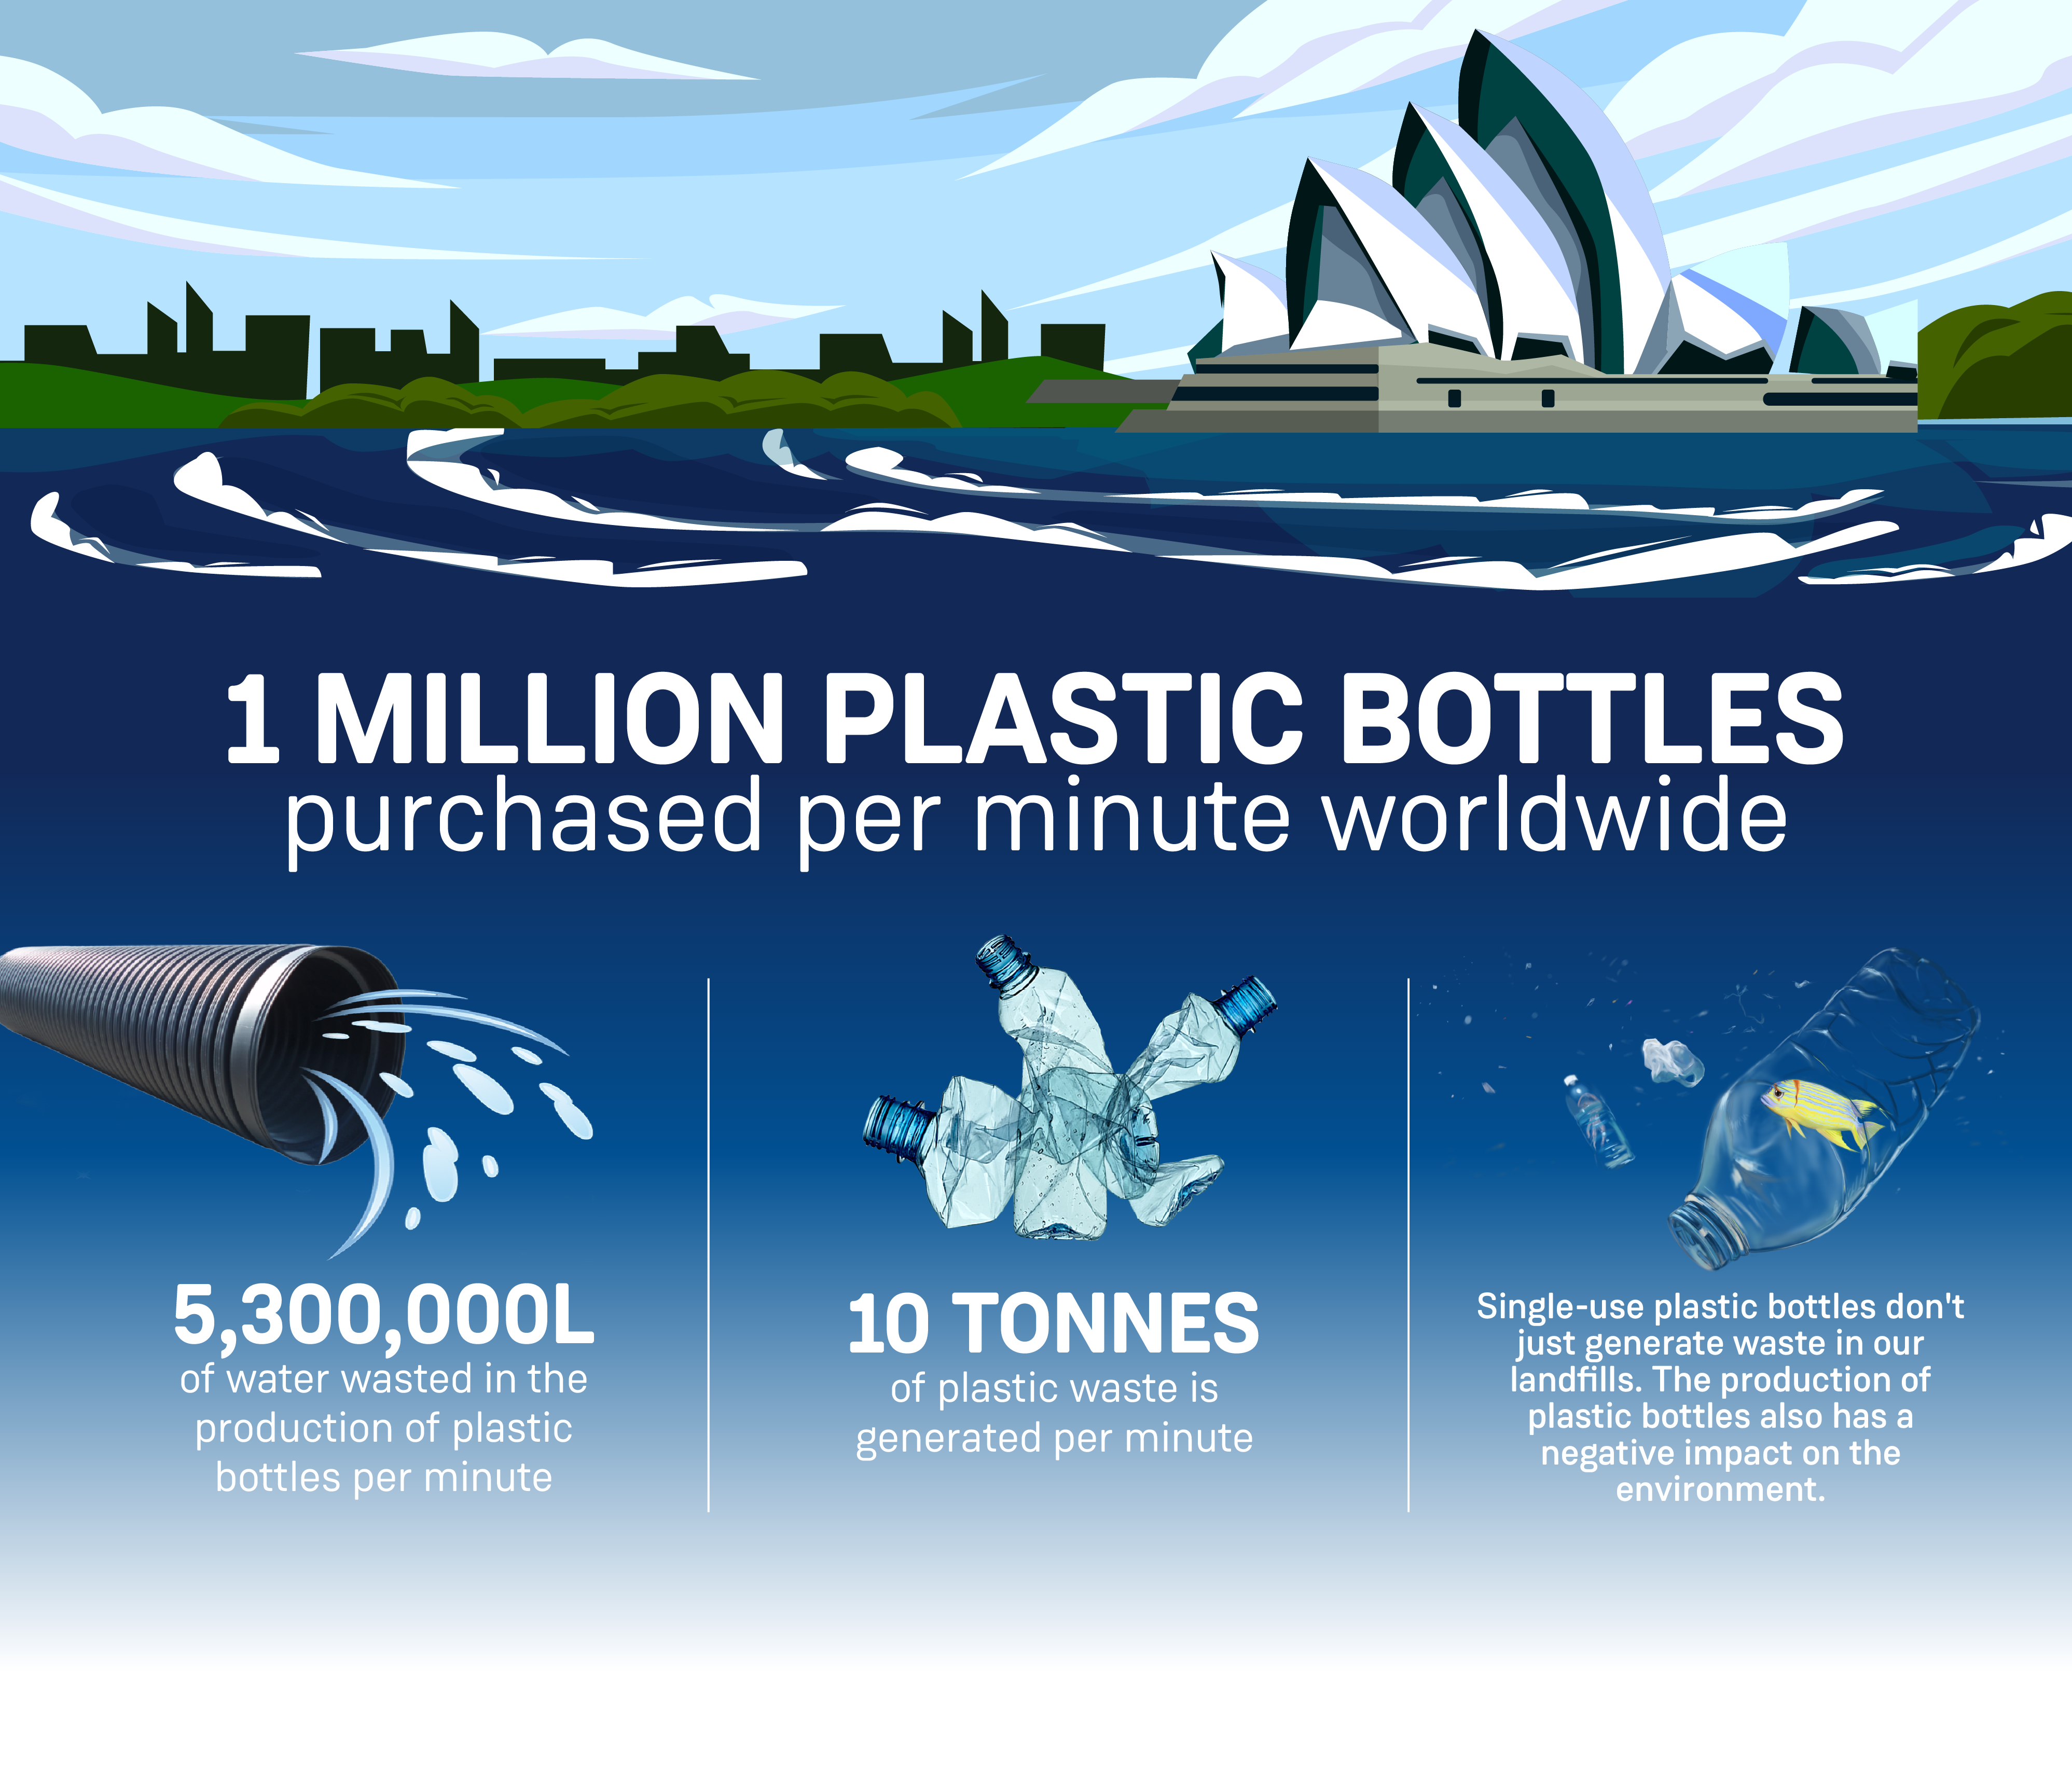 An infographic showing the problem with single-use plastic bottles purchased per minute worldwide